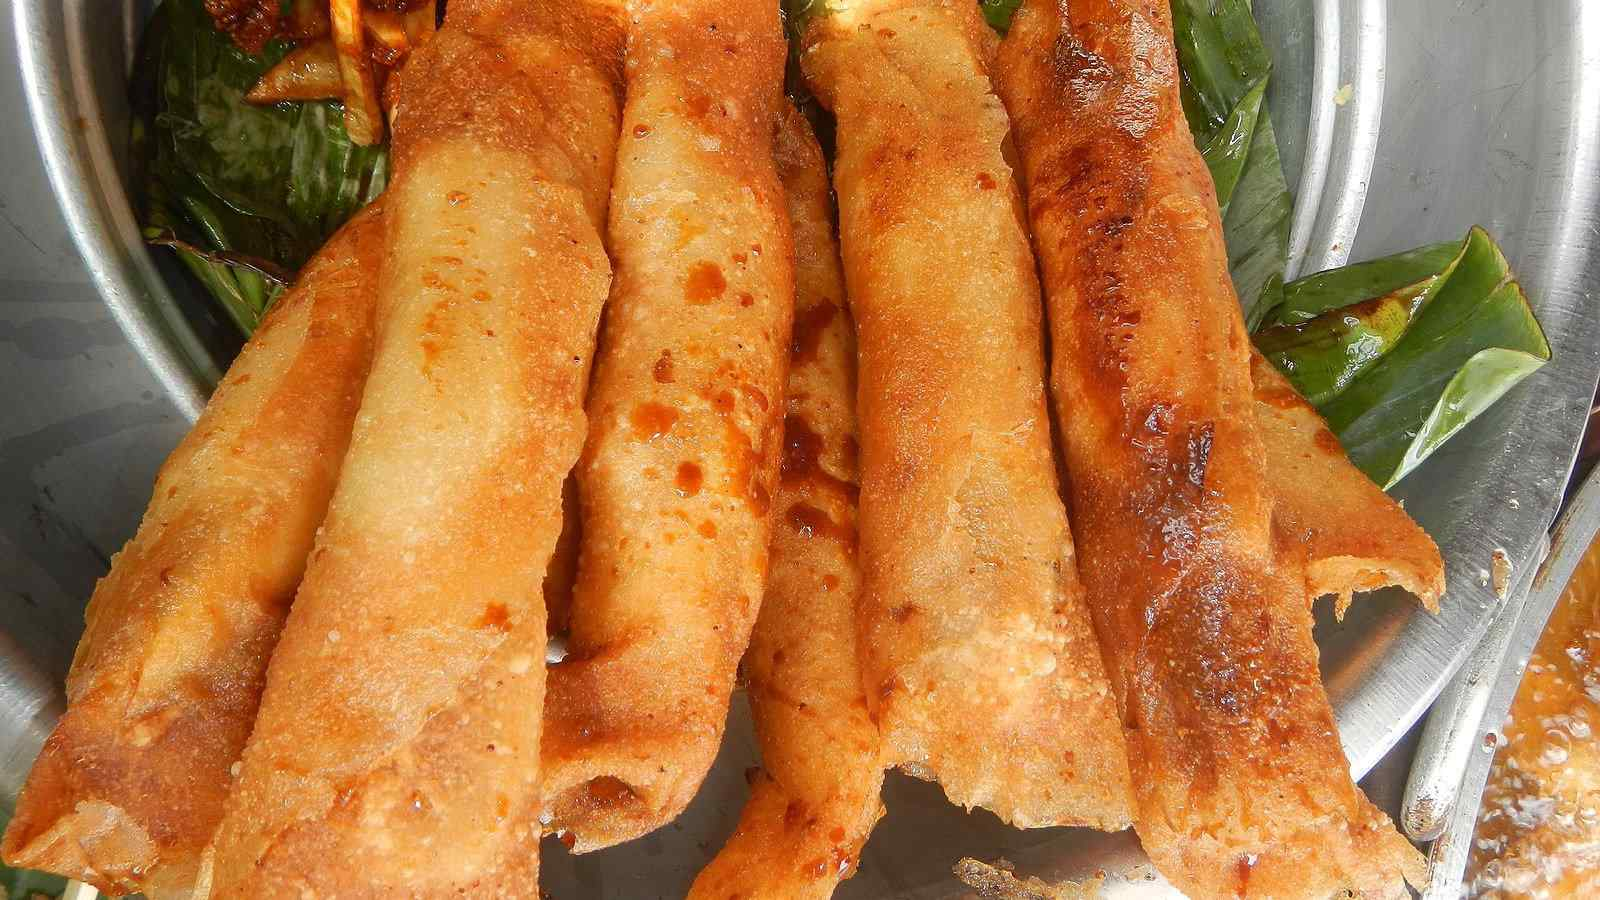 Turon is the name of Filipino sweet spring rolls, filled with banana or other delicious fruit